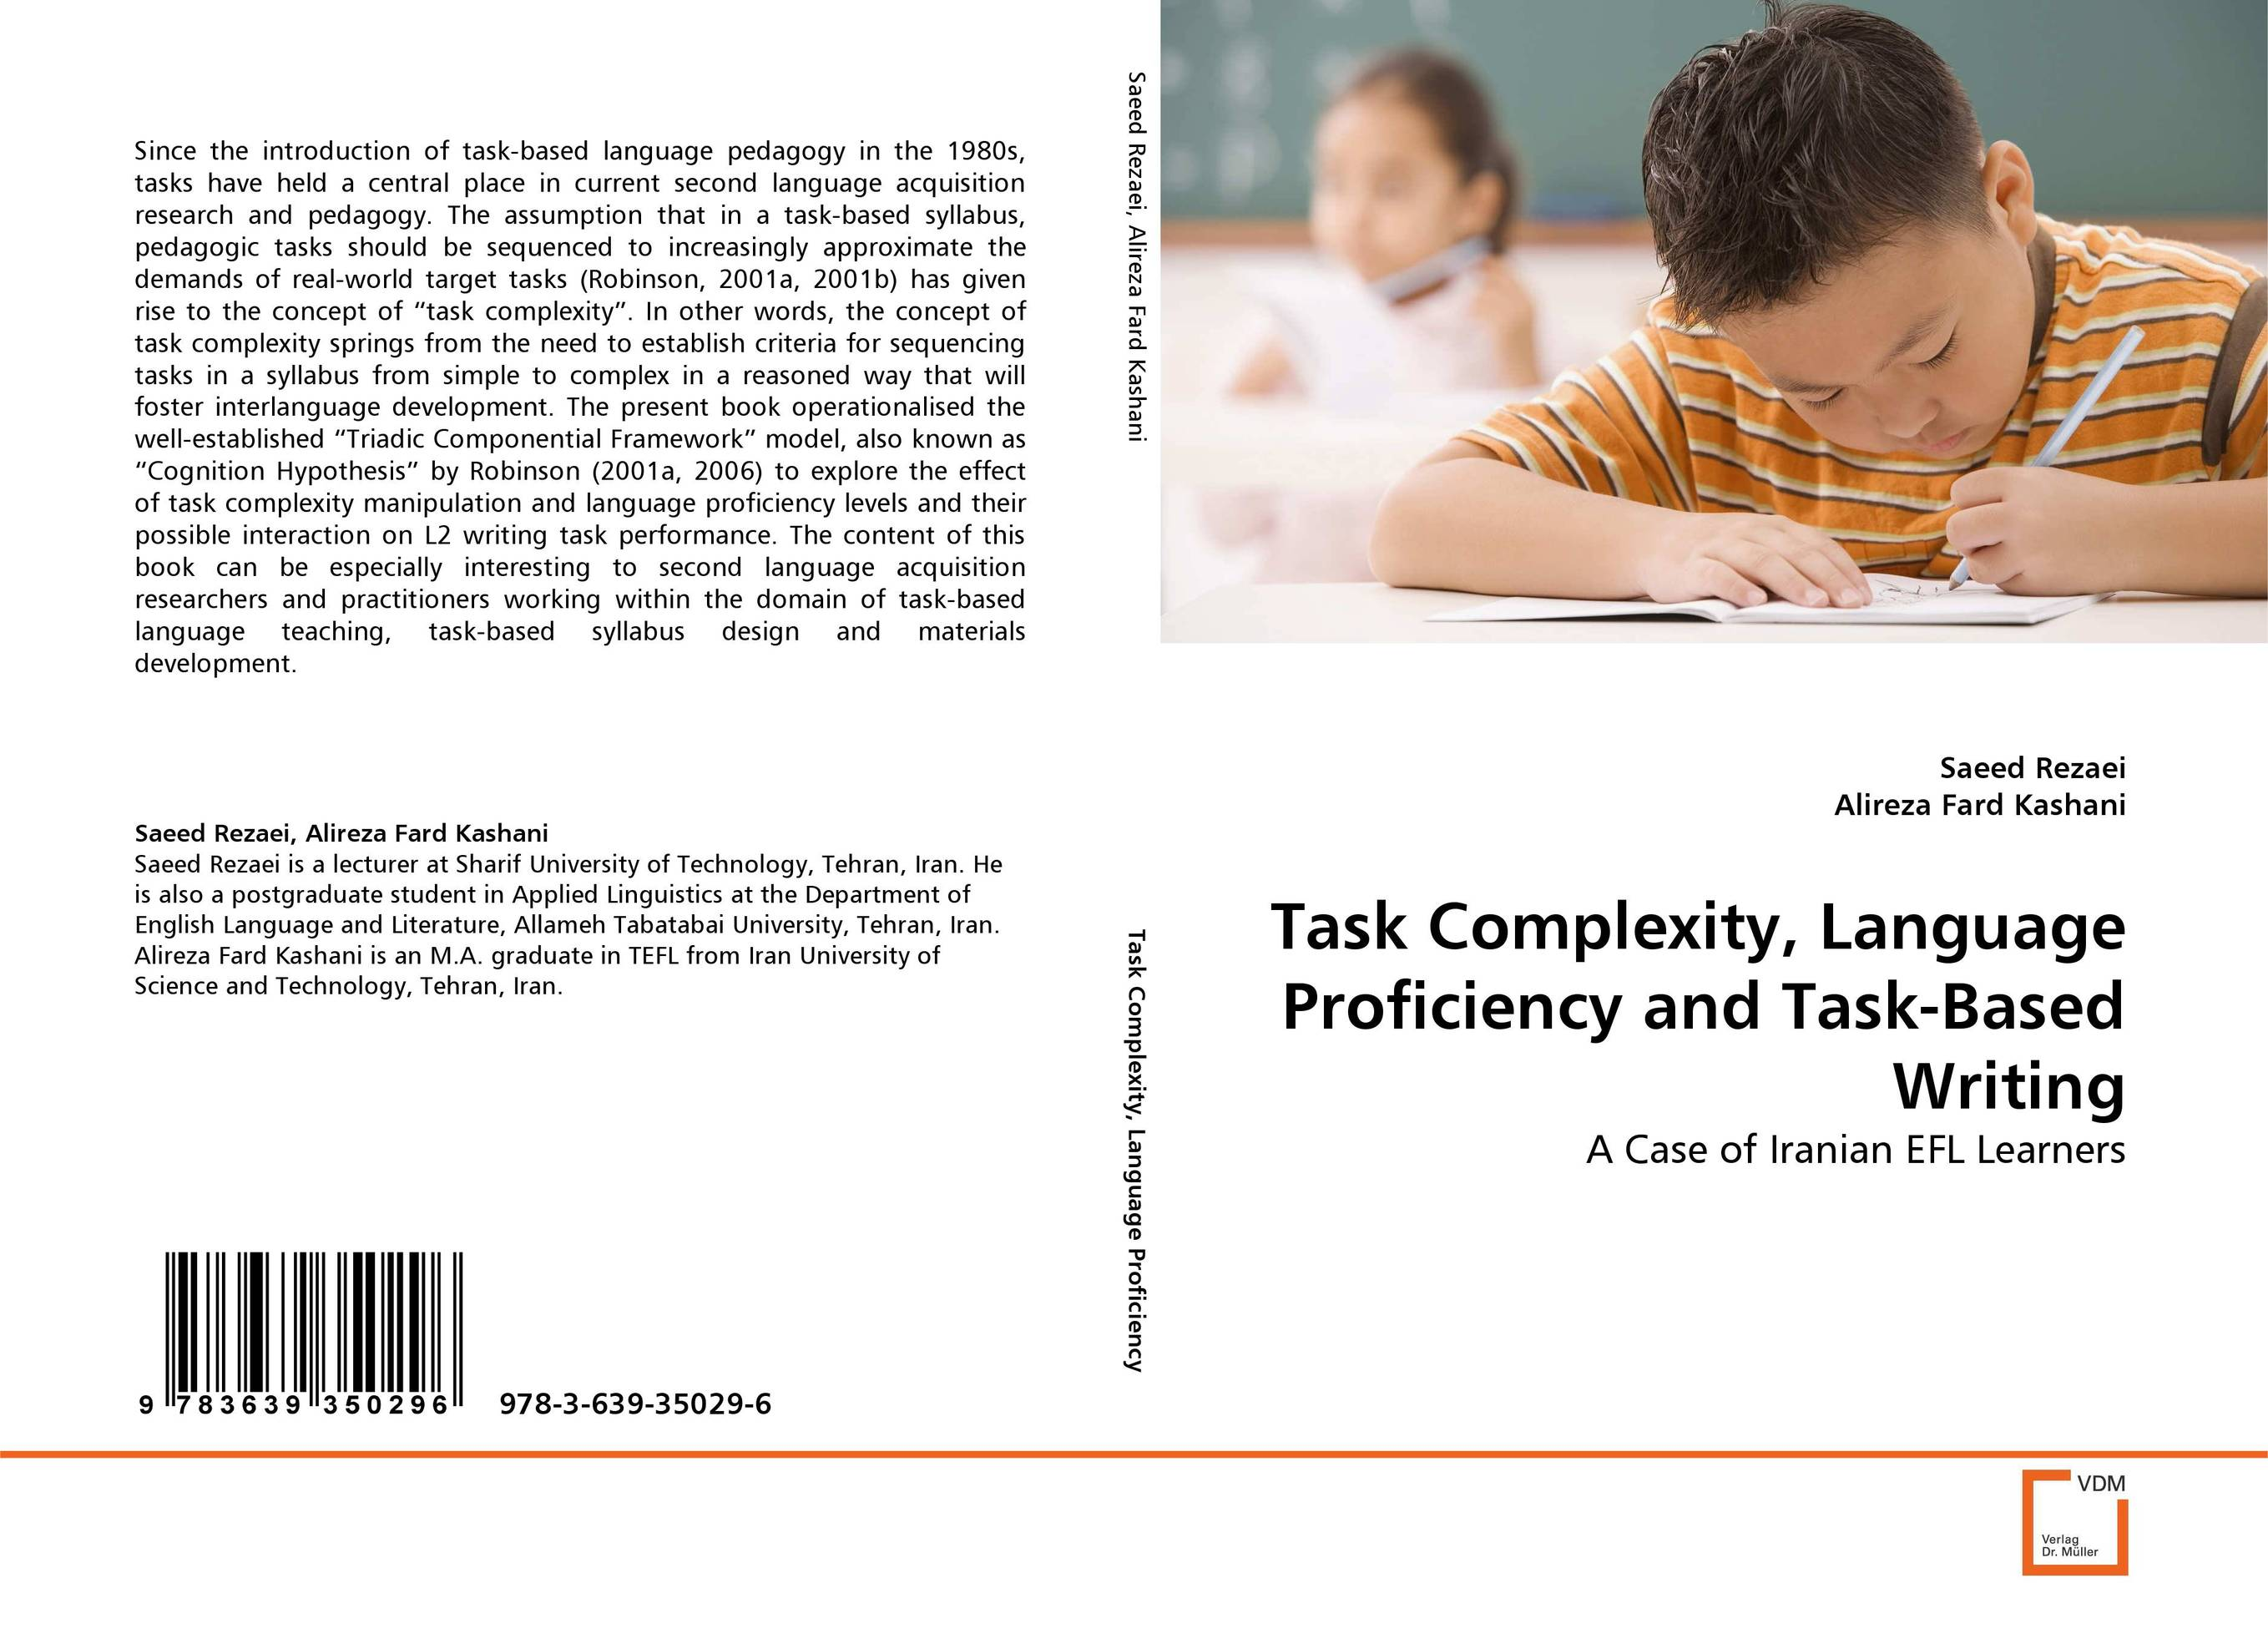 Task Complexity, Language Proficiency and Task-Based Writing david willis doing task based teaching